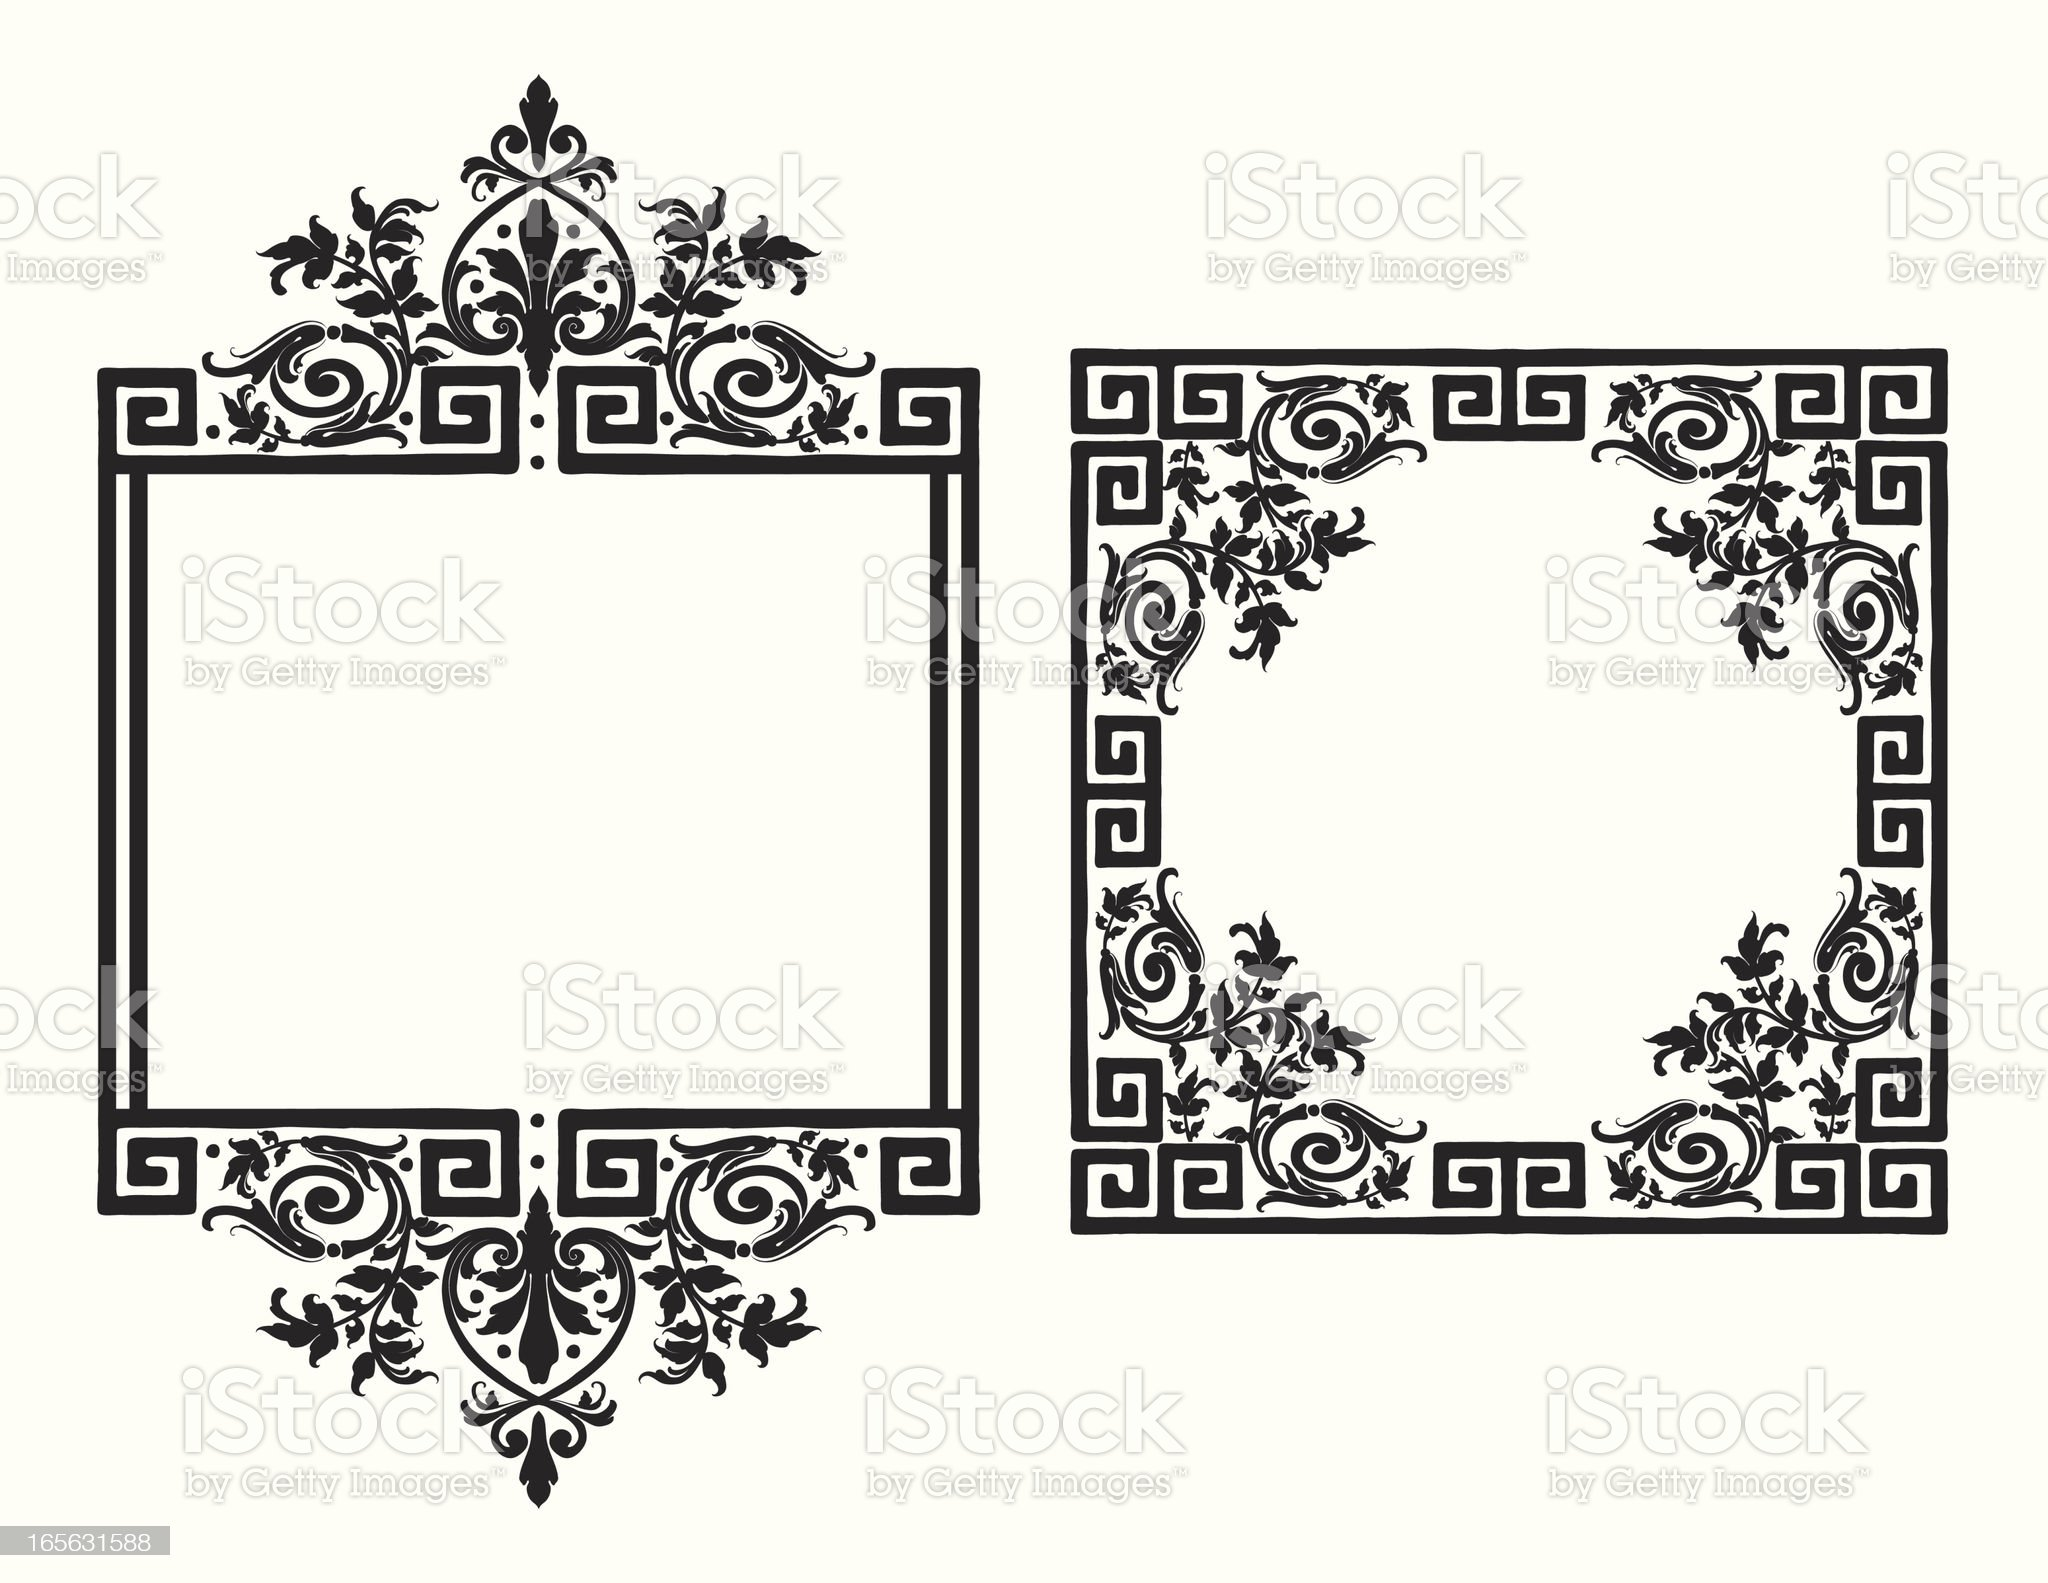 Antique Scroll Frames royalty-free stock vector art